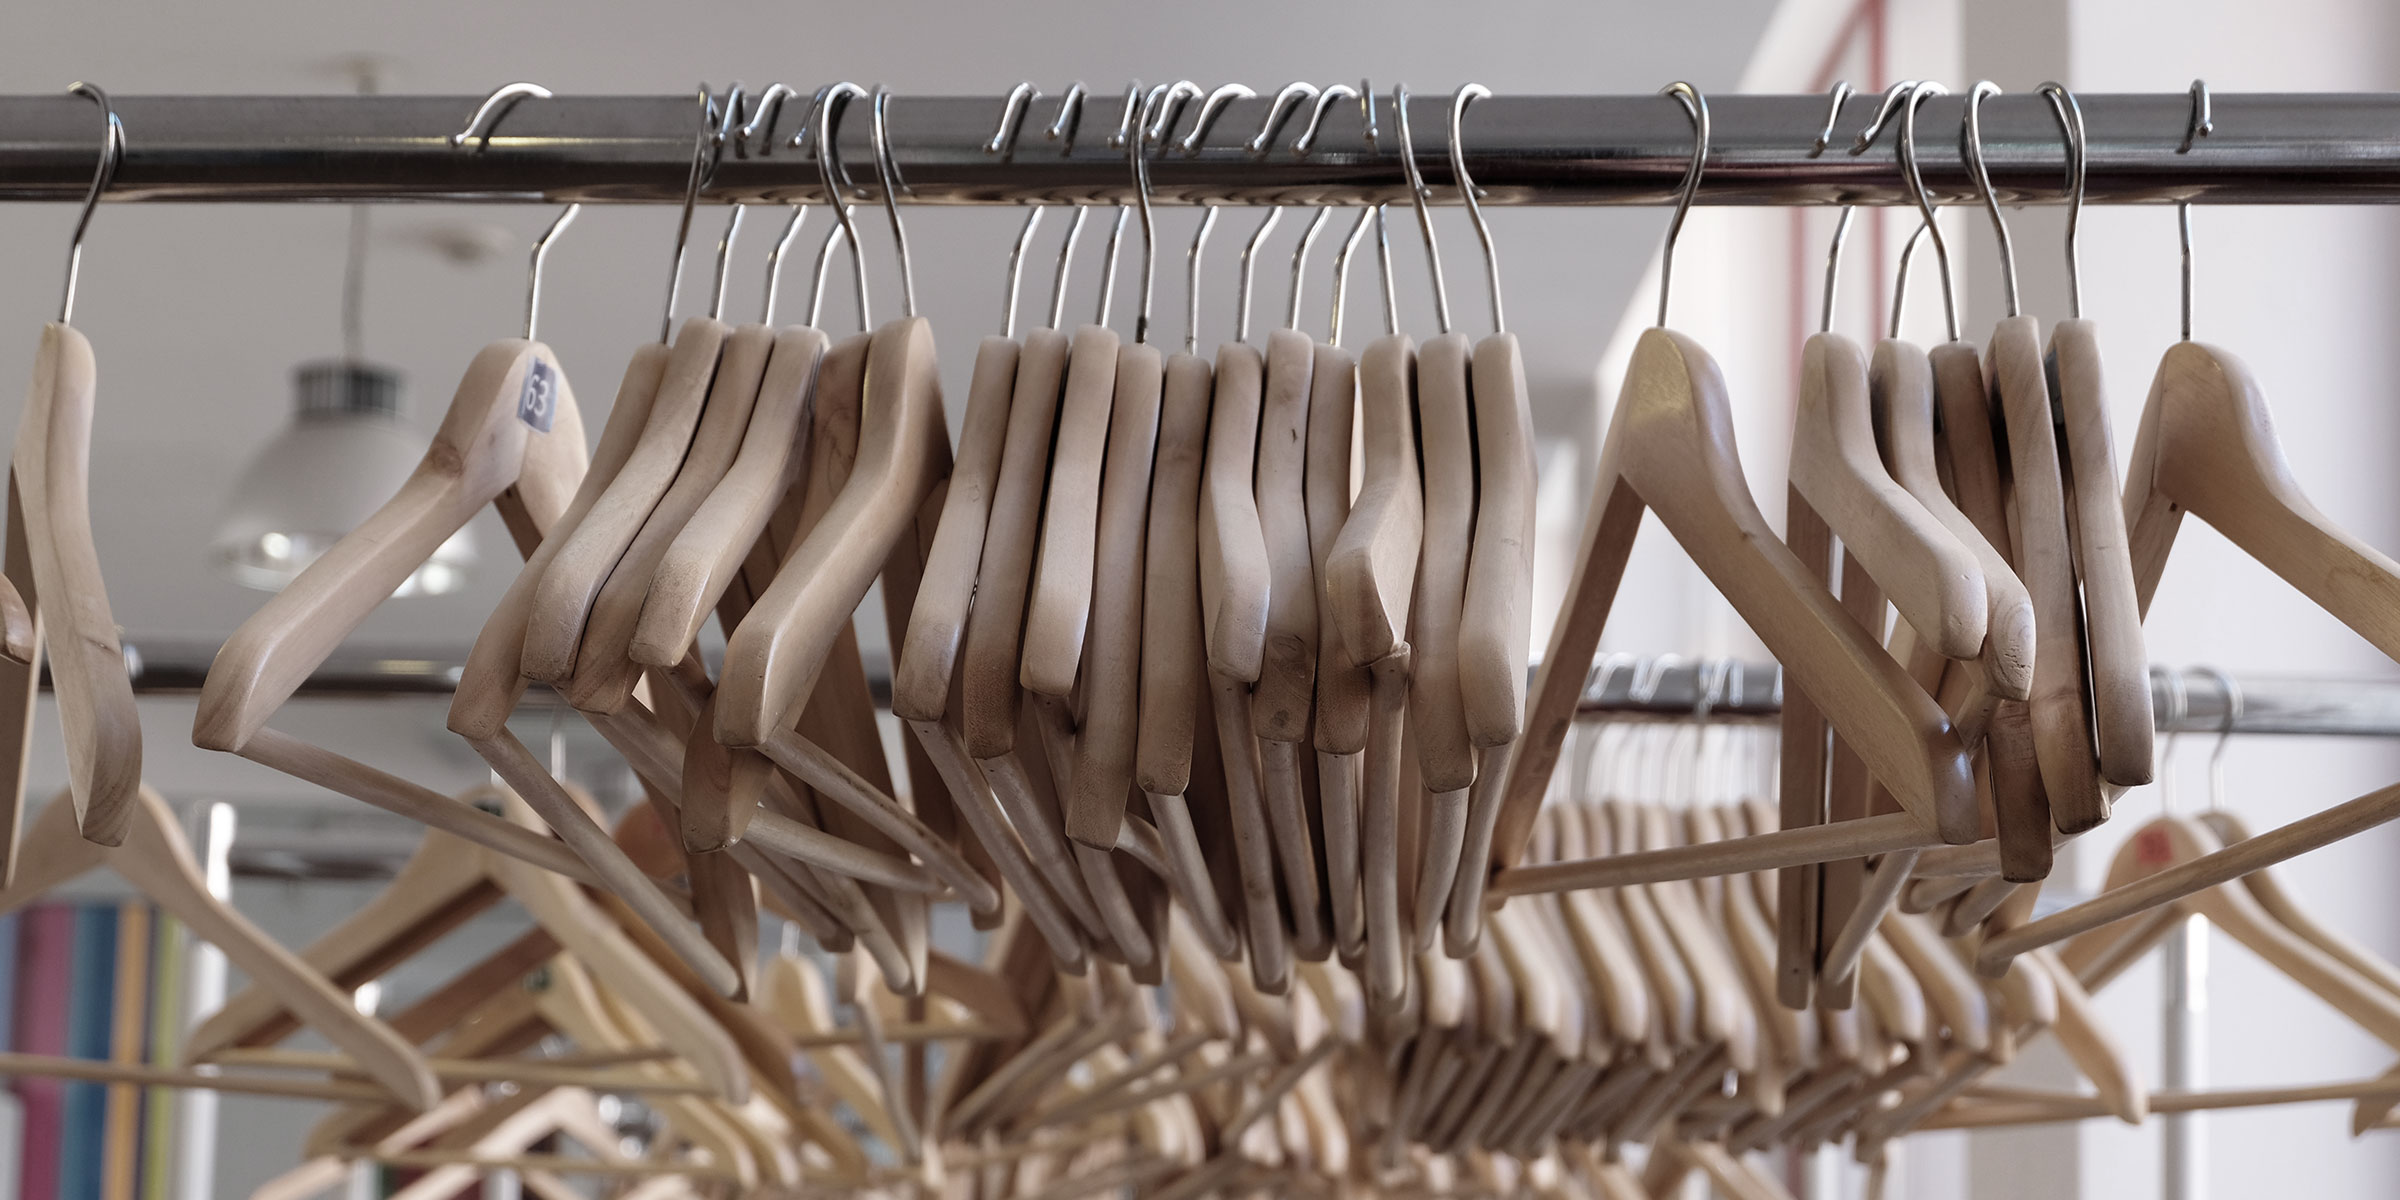 photo of clothes hangers